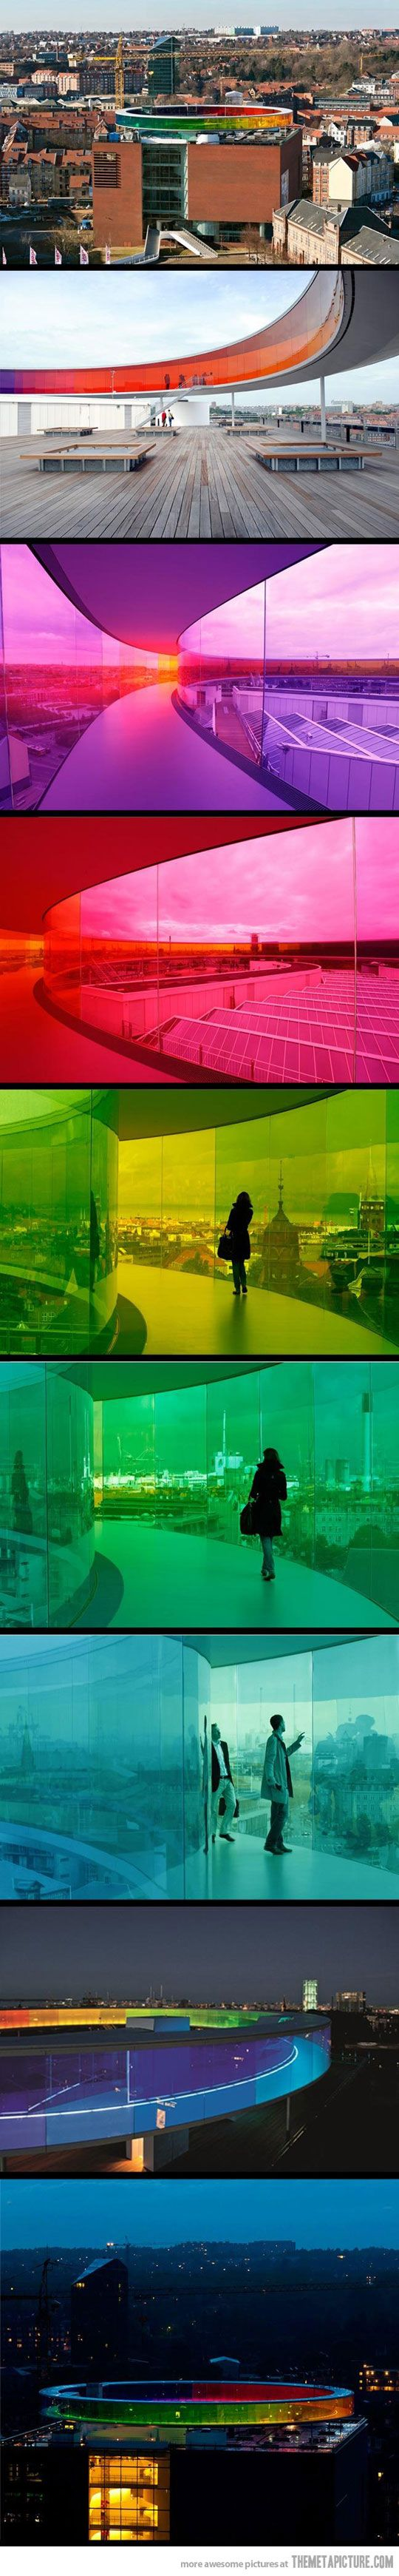 """Olafur Eliasson's, """"Your rainbow panorama,"""" is a circular, panoramic walkway, in all the colors of the rainbow, constructed on the roof of the cubic museum building designed by schmidt hammer lassen. The ARoS building [in Aarhus, Denmark] was inspired by Dante's 'Divine Comedy'..."""" Read more here: http://www.arcspace.com/architects/olafur_eliasson/rainbow-panorama/rainbow-panorama.html"""